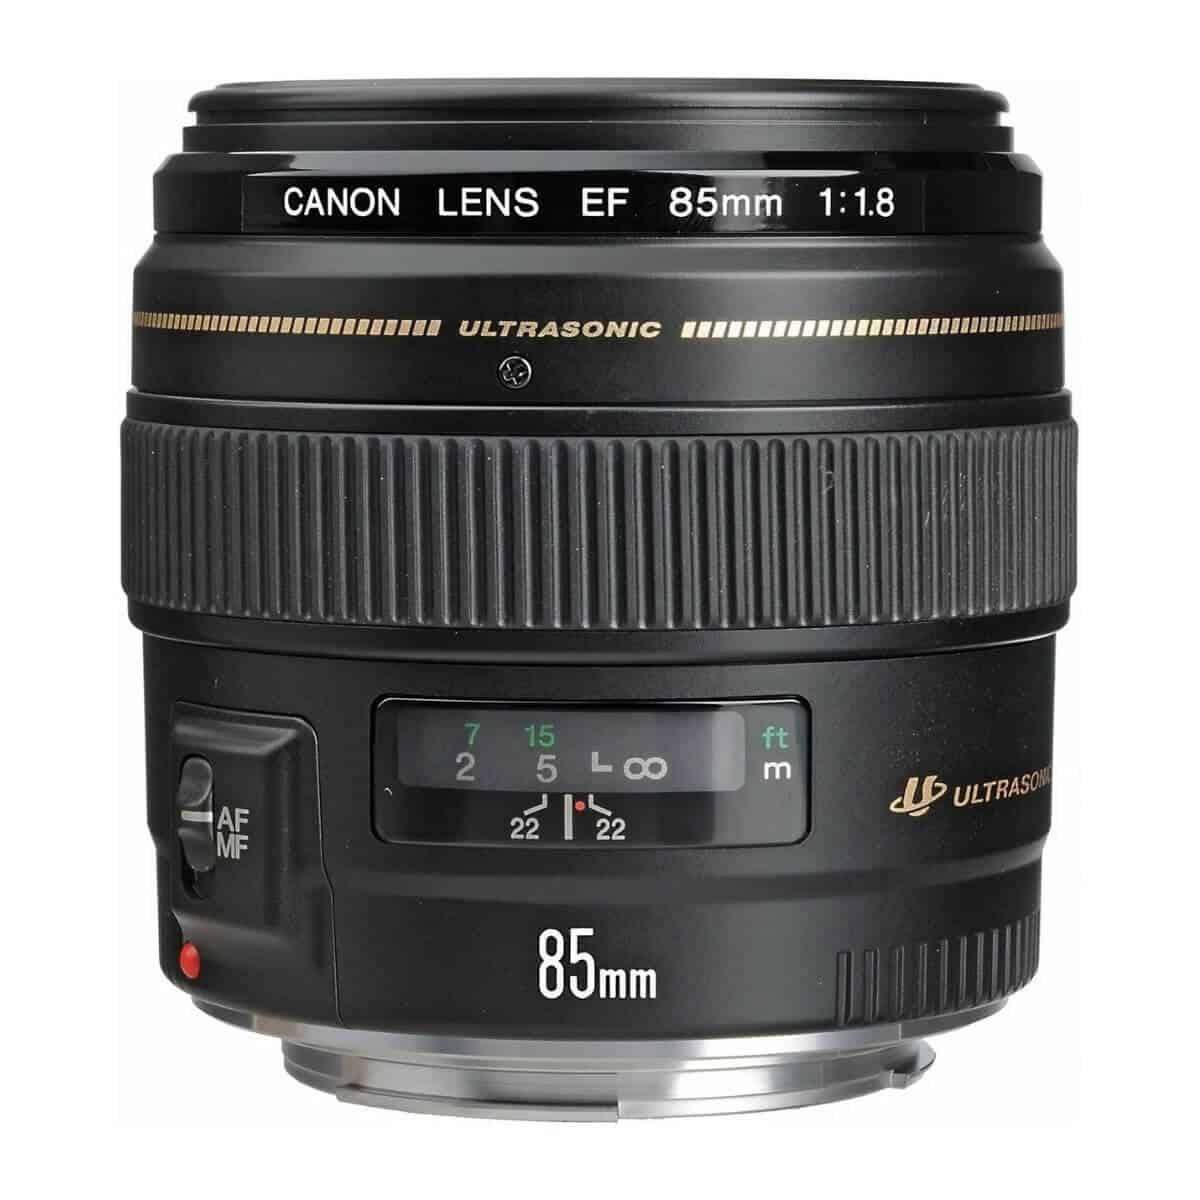 Canon 85mm f/1.8 lens.